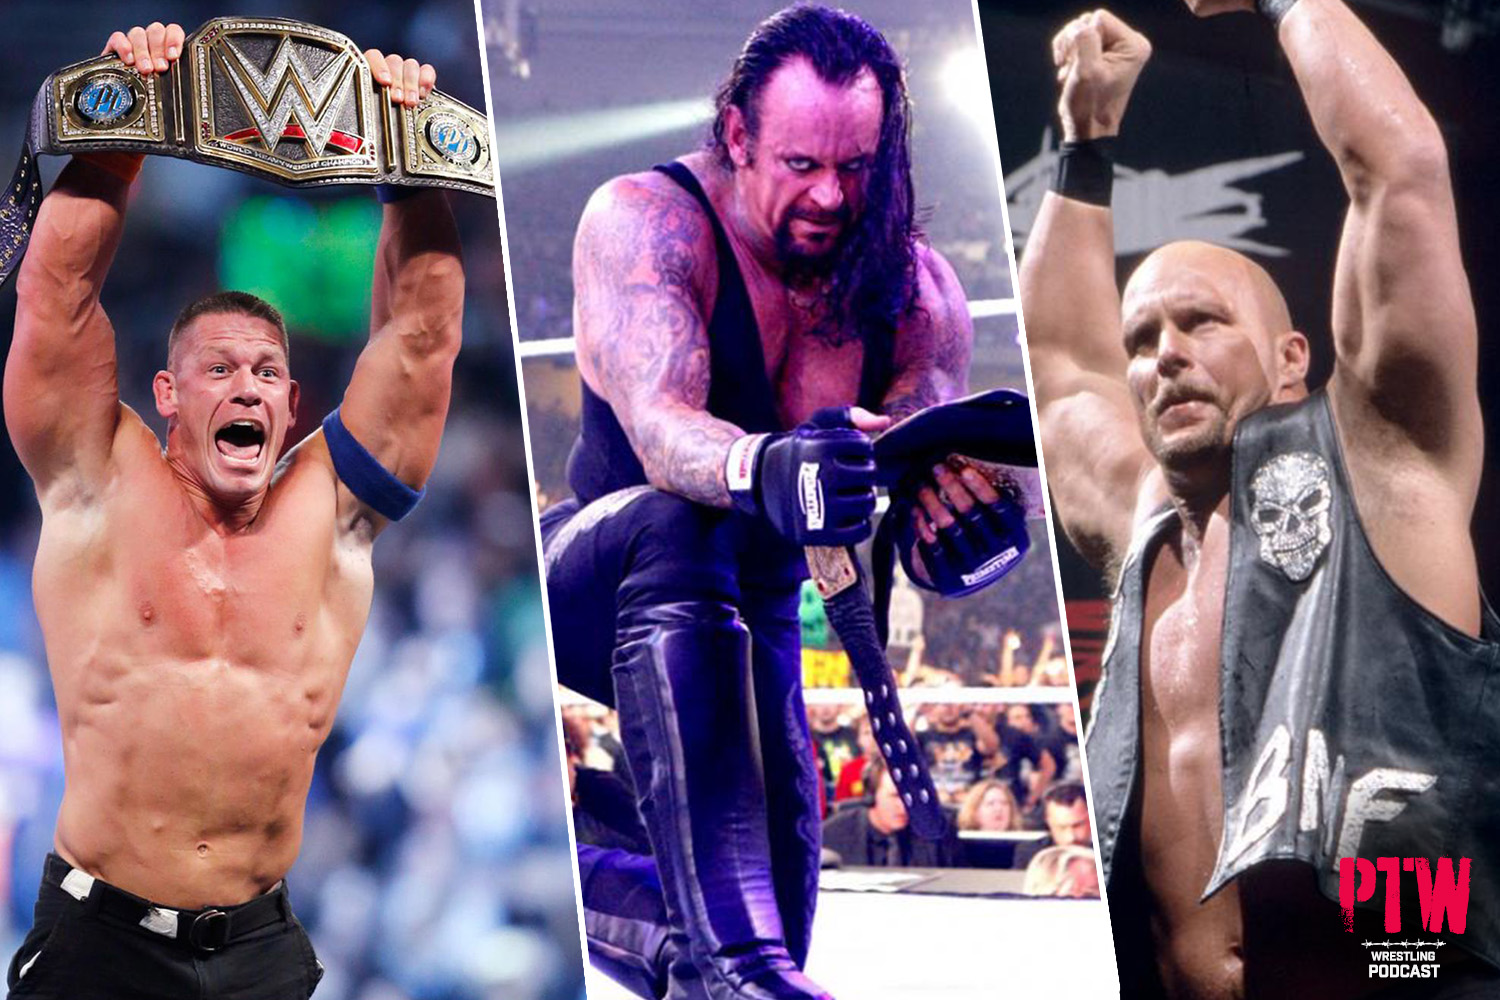 ptw-wrestling-podcast-top-10-wwe-careers